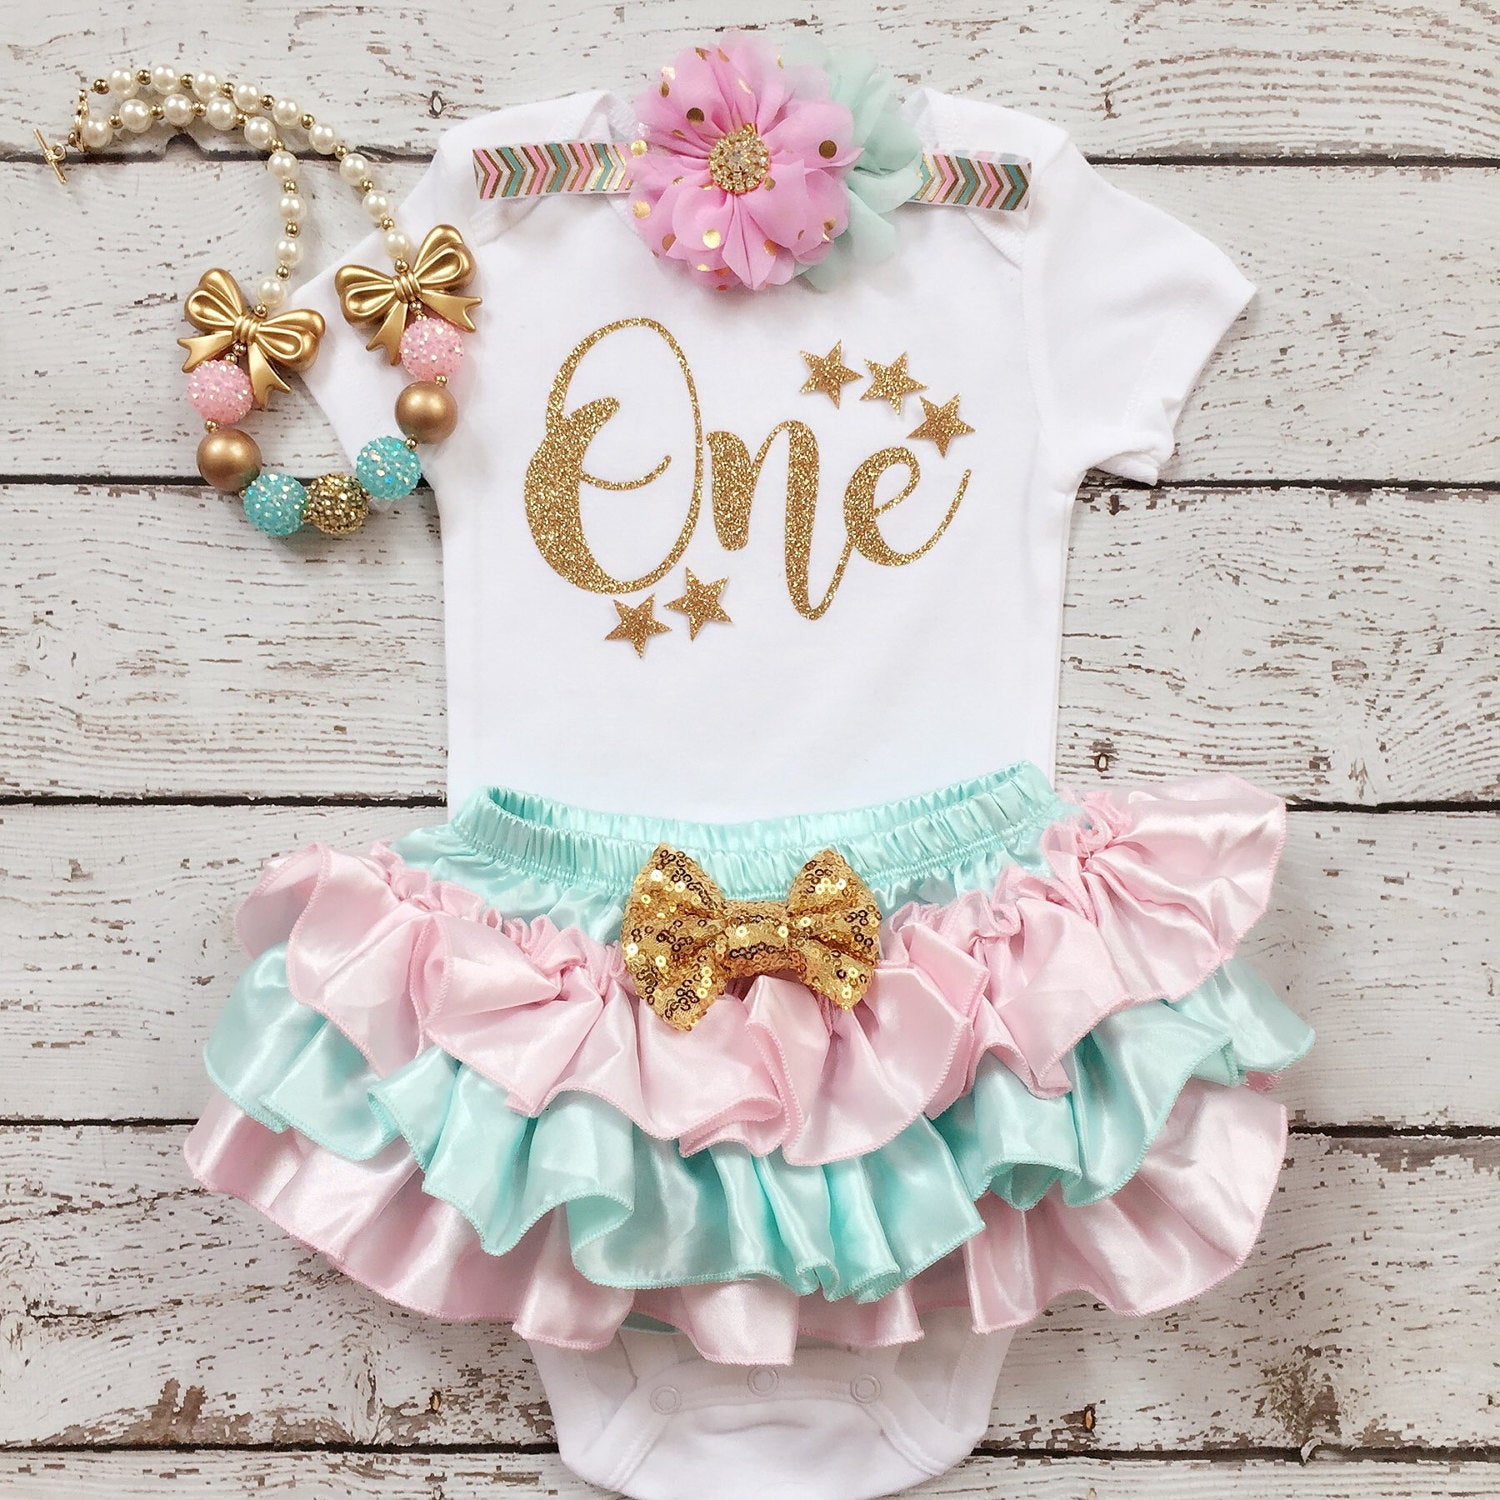 ee92c11e1 ... First Birthday Outfit- Pink Mint Gold/Twinkle Twinkle Little Star/  Princess Birthday